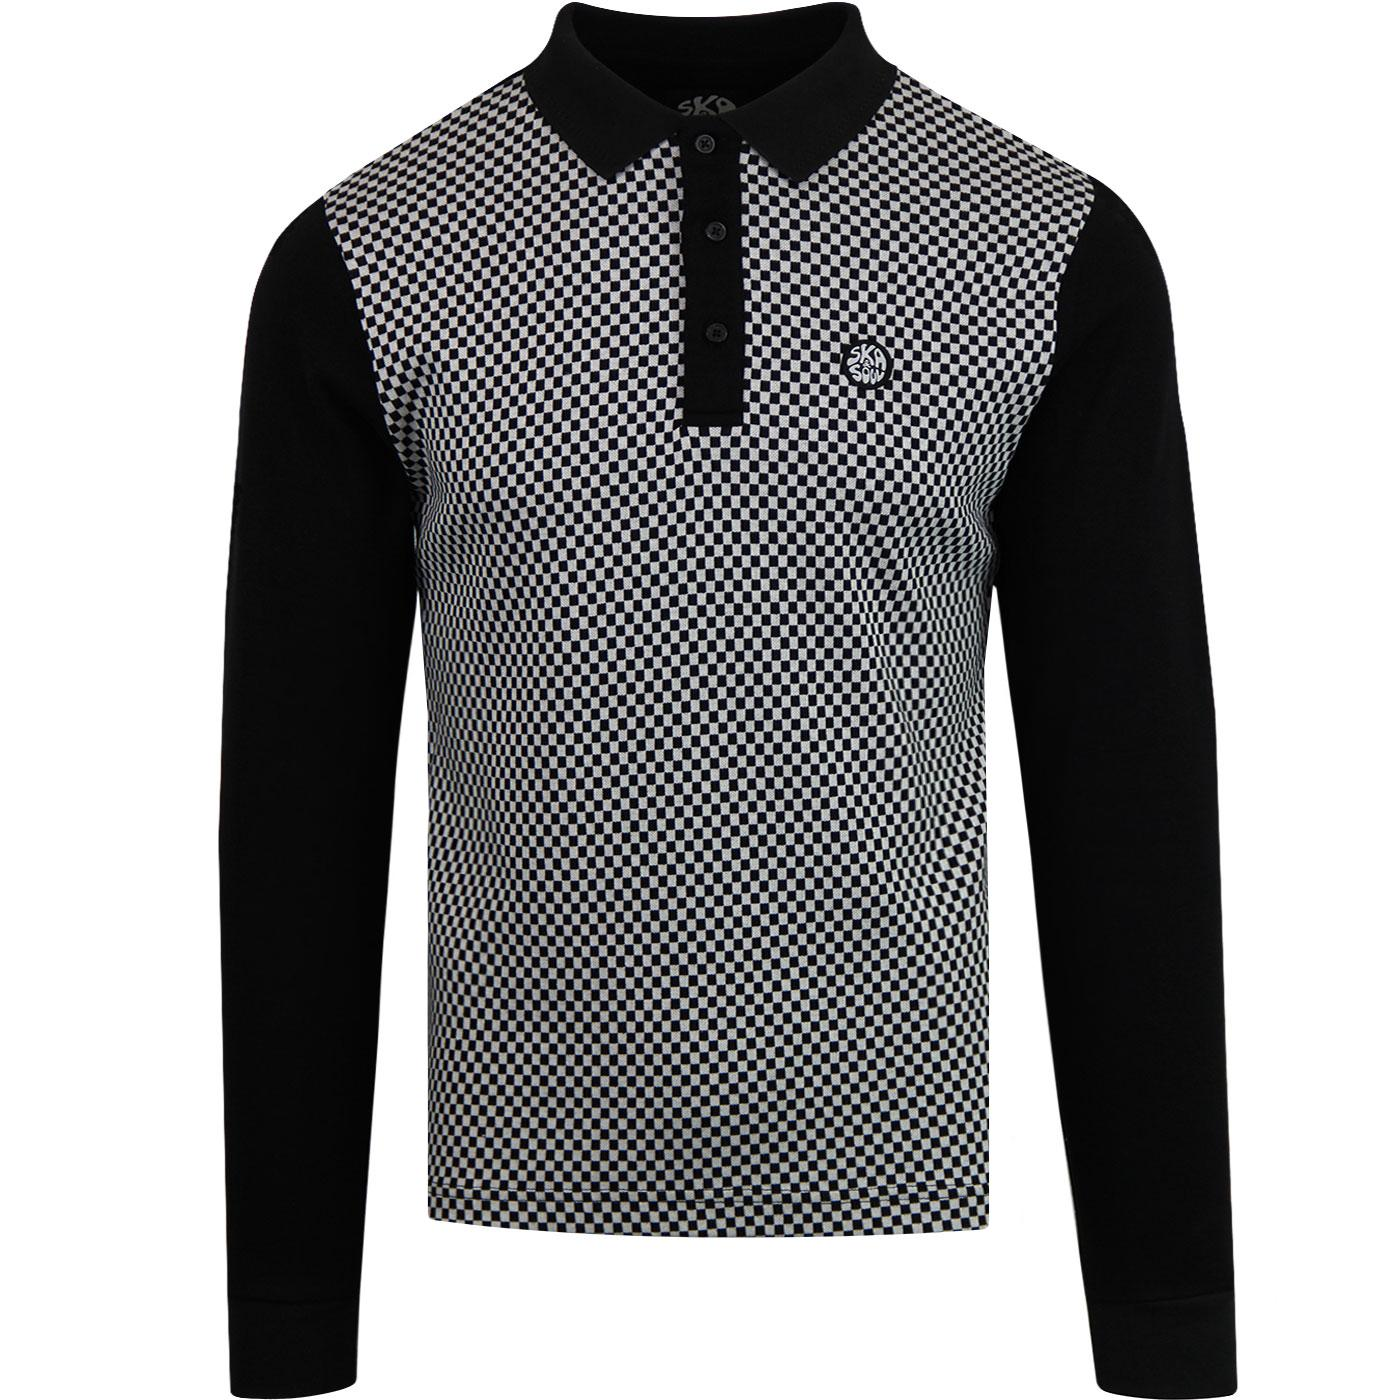 SKA & SOUL Men's Mod Checkerboard Long Sleeve Polo